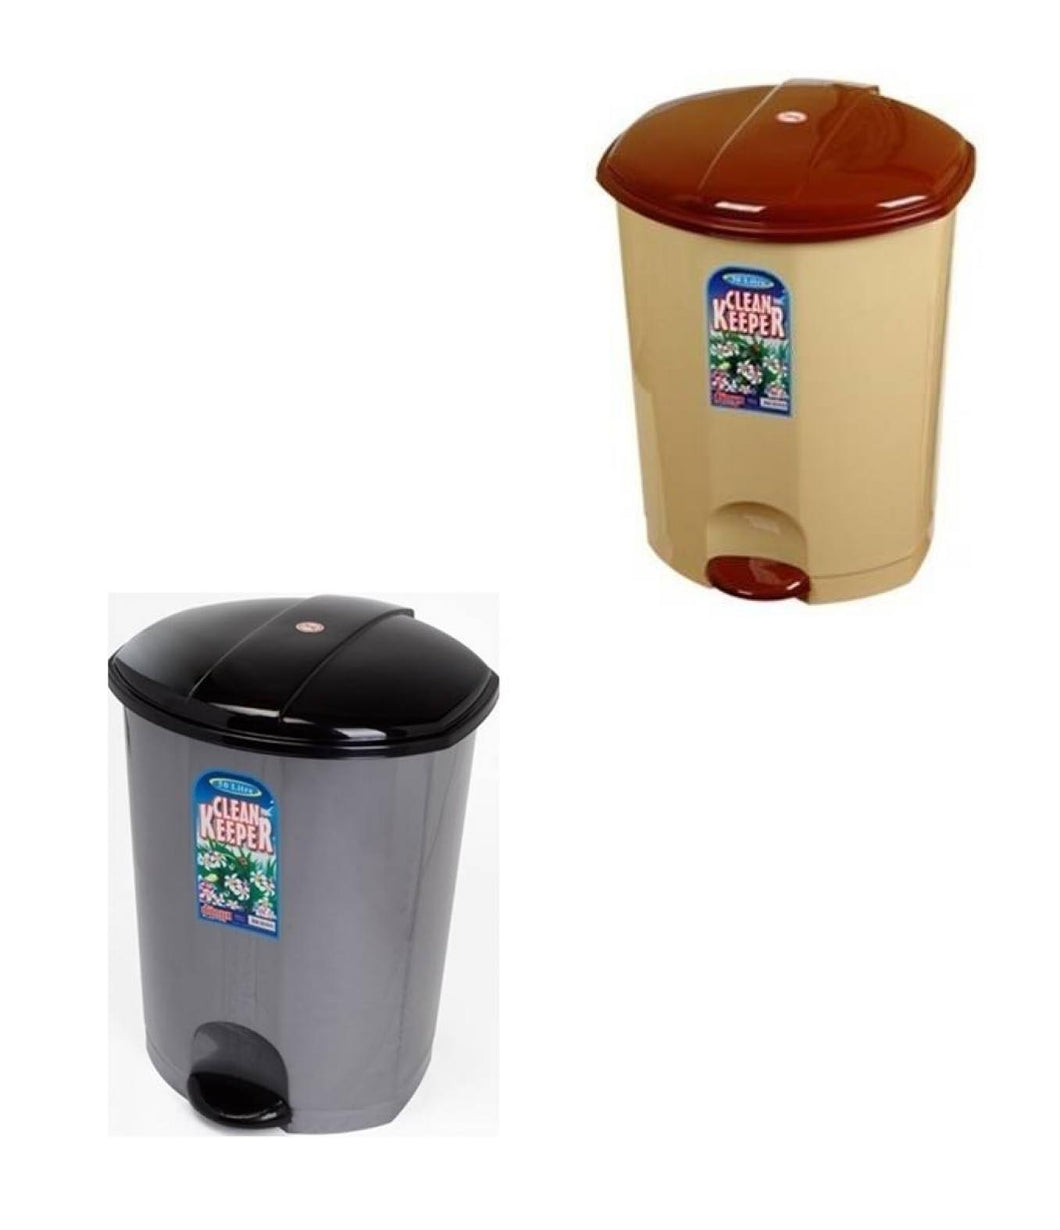 Home Kitchen Rubbish Pedal Bin Clean Keeper Mixed Colour Pedal Bin 11 Litre x 1 D01012/PB11  (Parcel Rate)